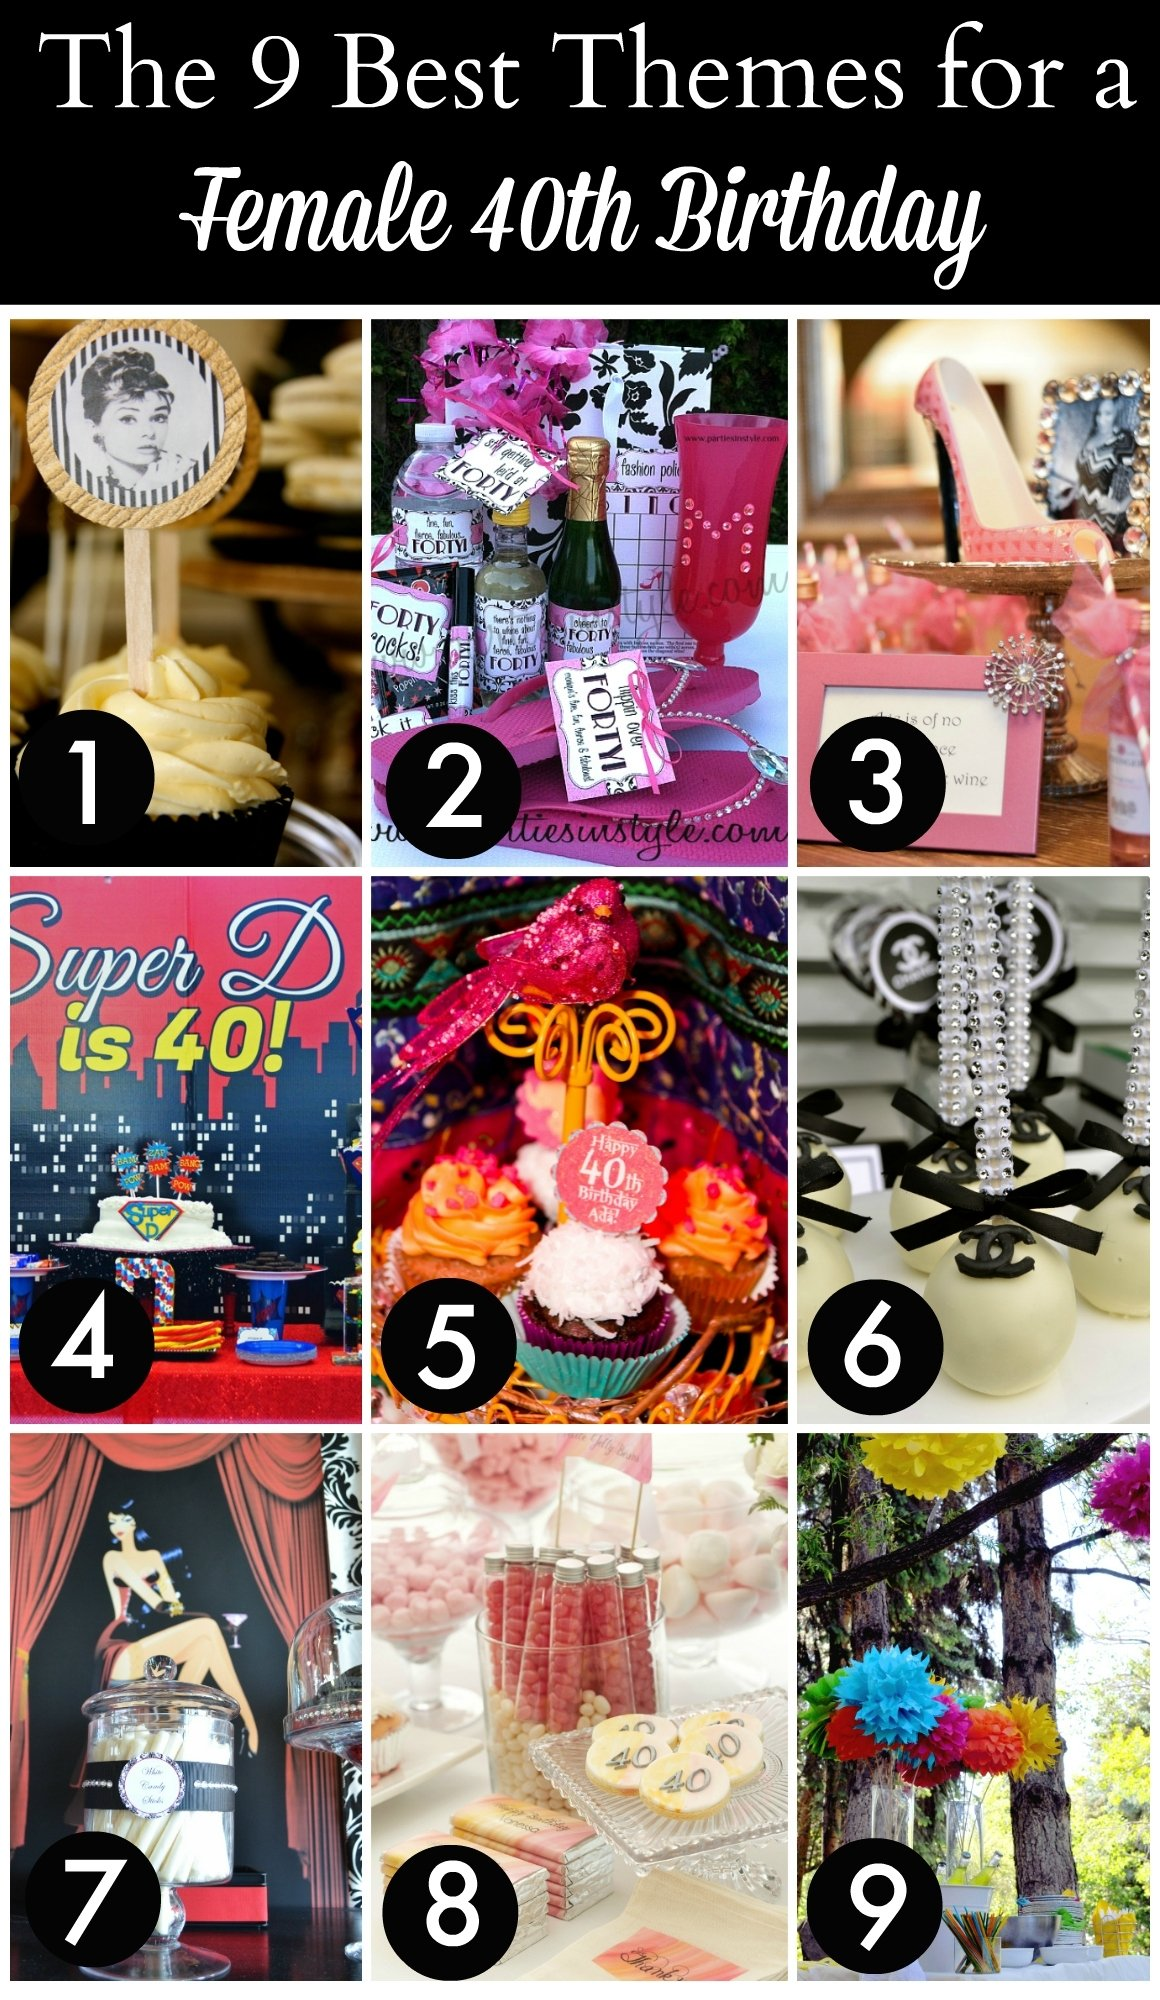 10 Trendy 40Th Birthday Gift Ideas Her the 12 best 40th birthday themes for women catch my party 11 2020